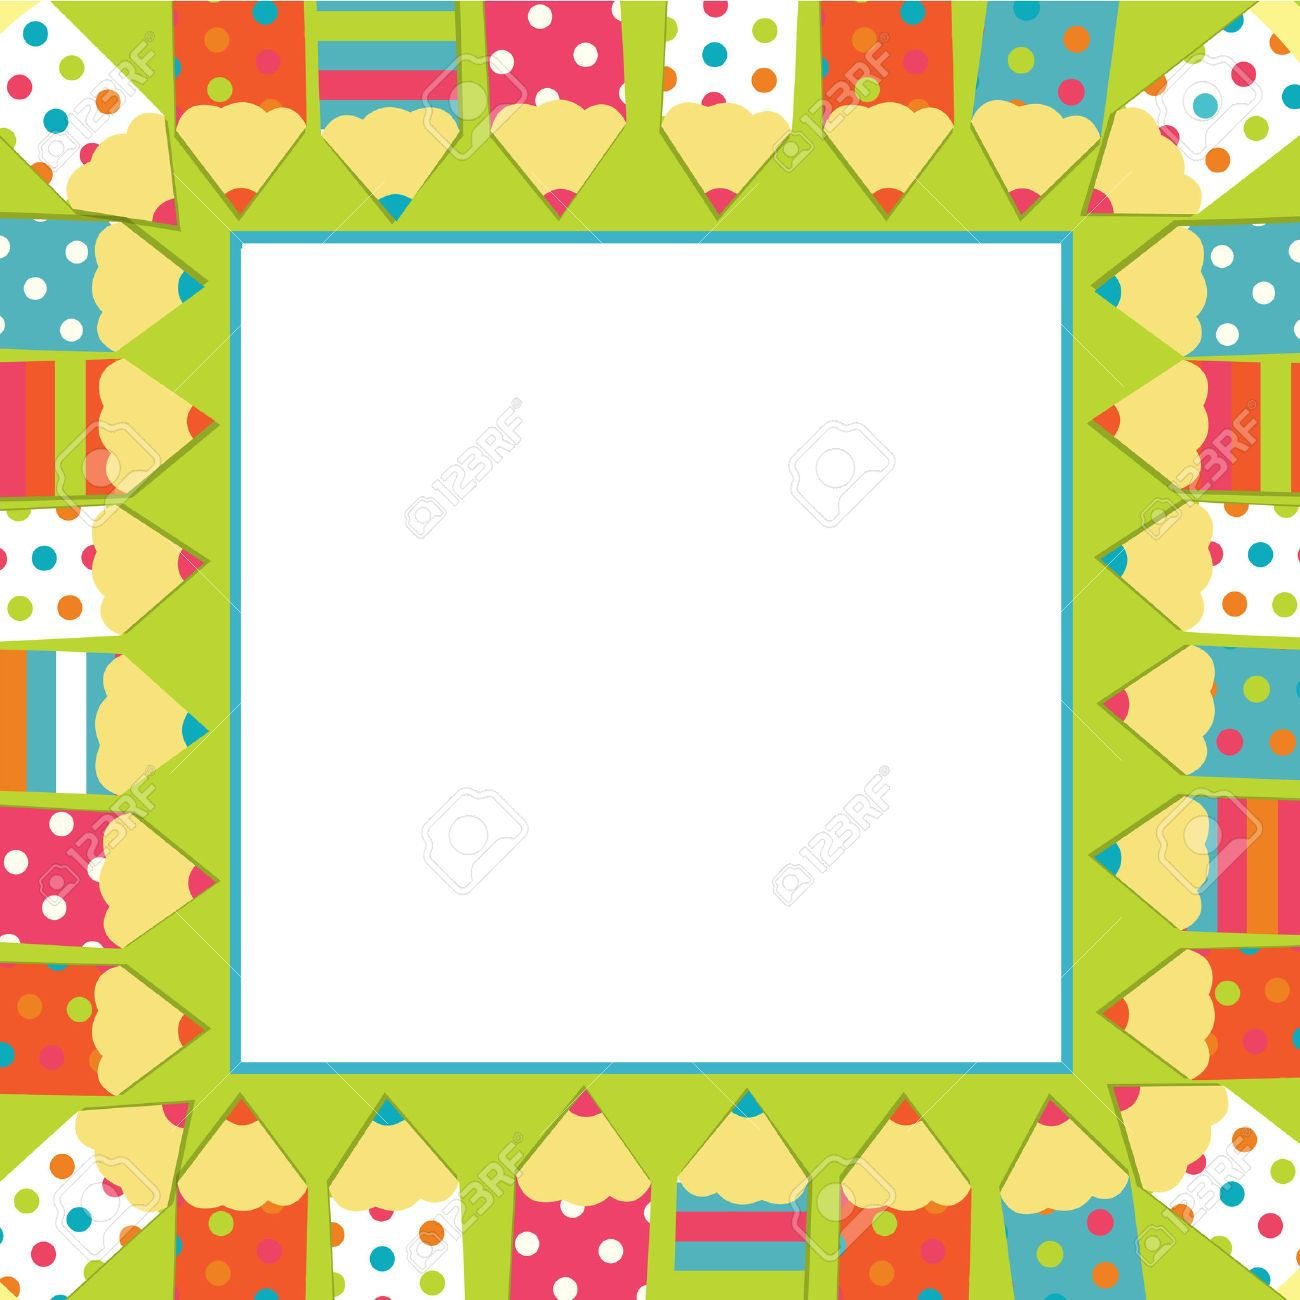 cute frame illustrations - Google Search | Borders, Frames ...